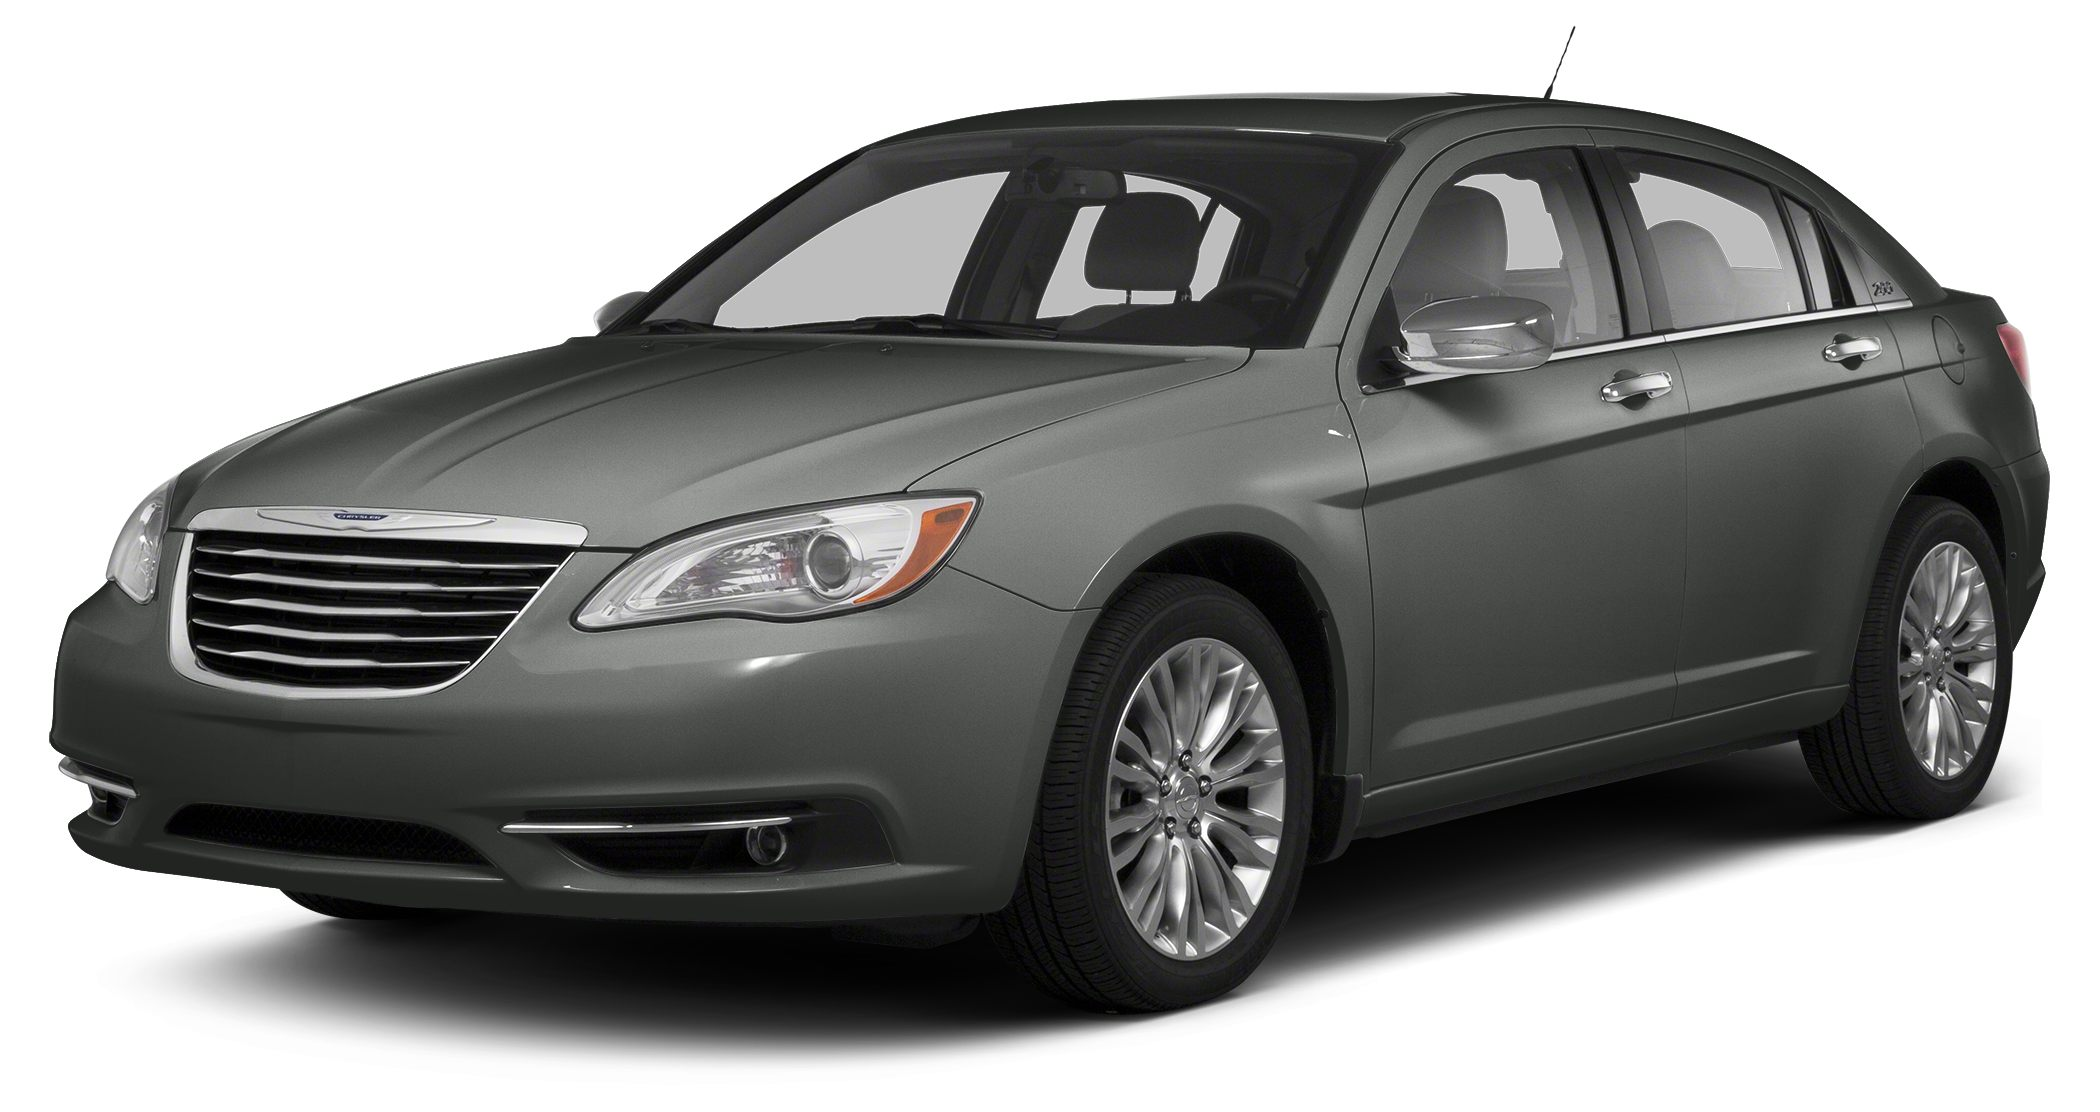 2013 Chrysler 200 Touring DISCLAIMER We are excited to offer this vehicle to you but it is current